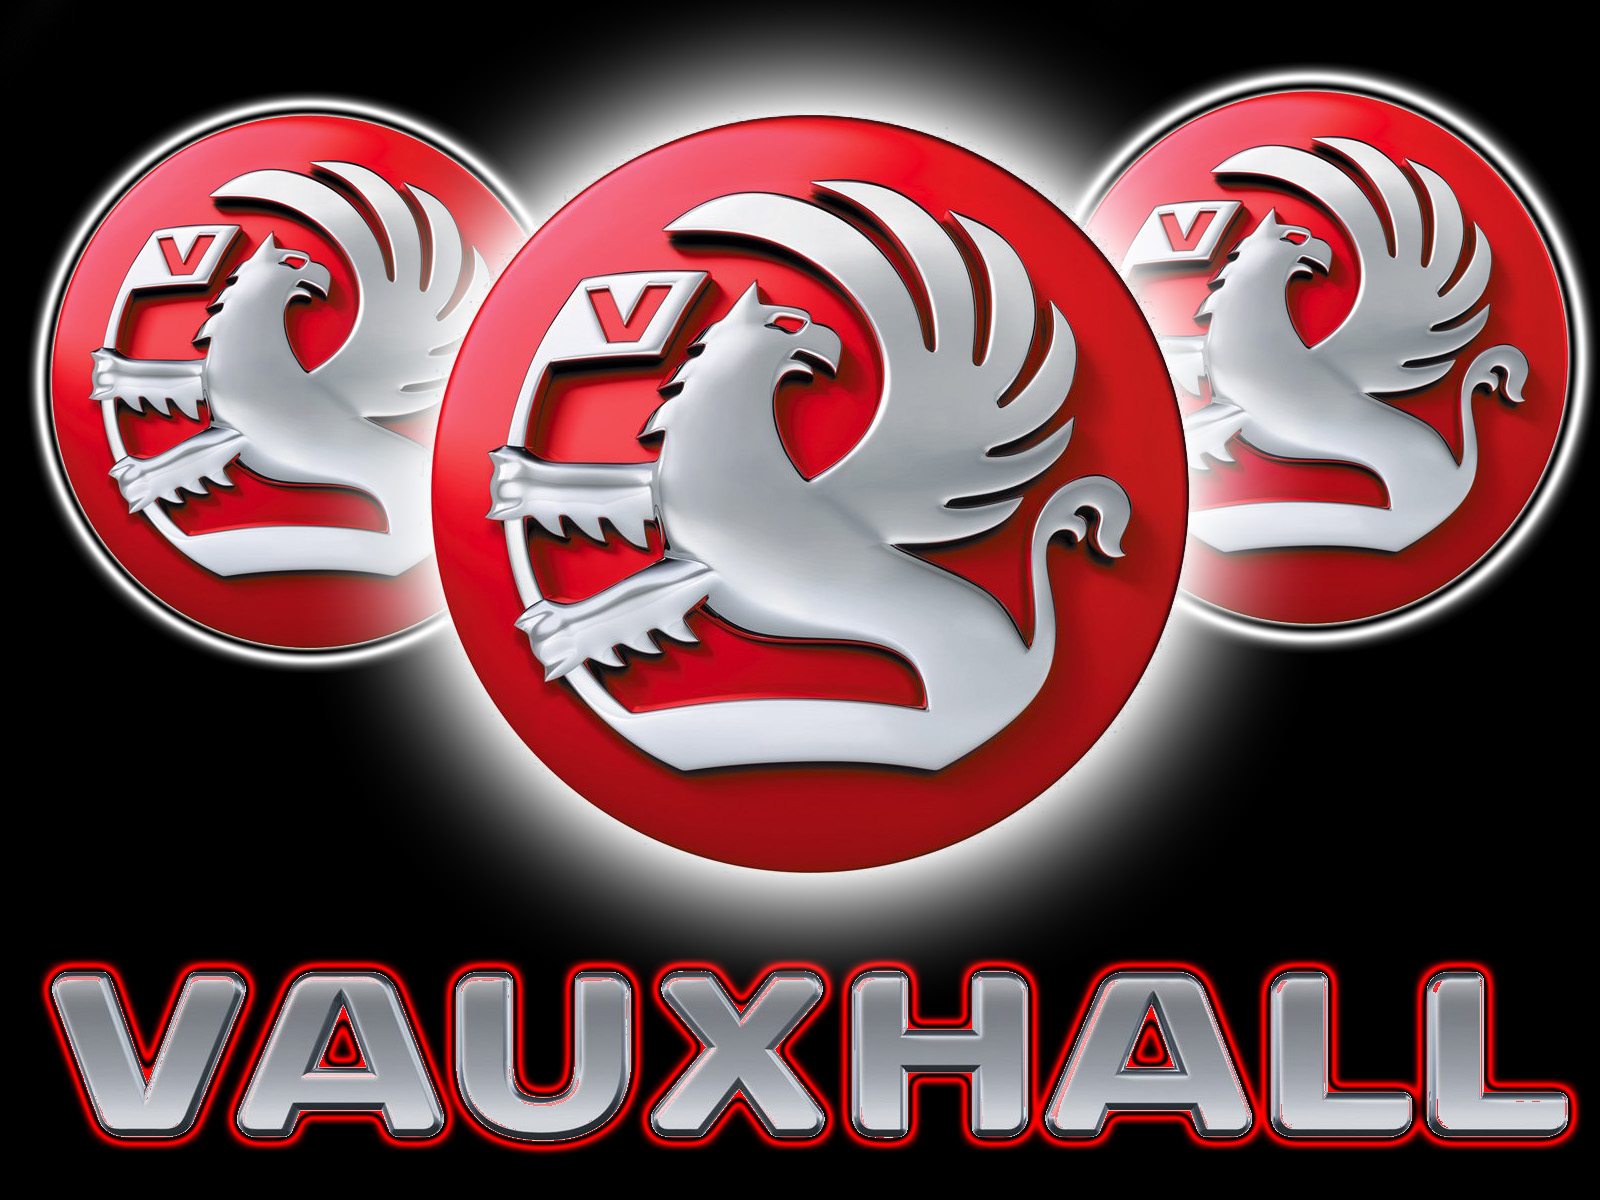 Download Vauxhall wallpaper, 'Vauxhall 5'.